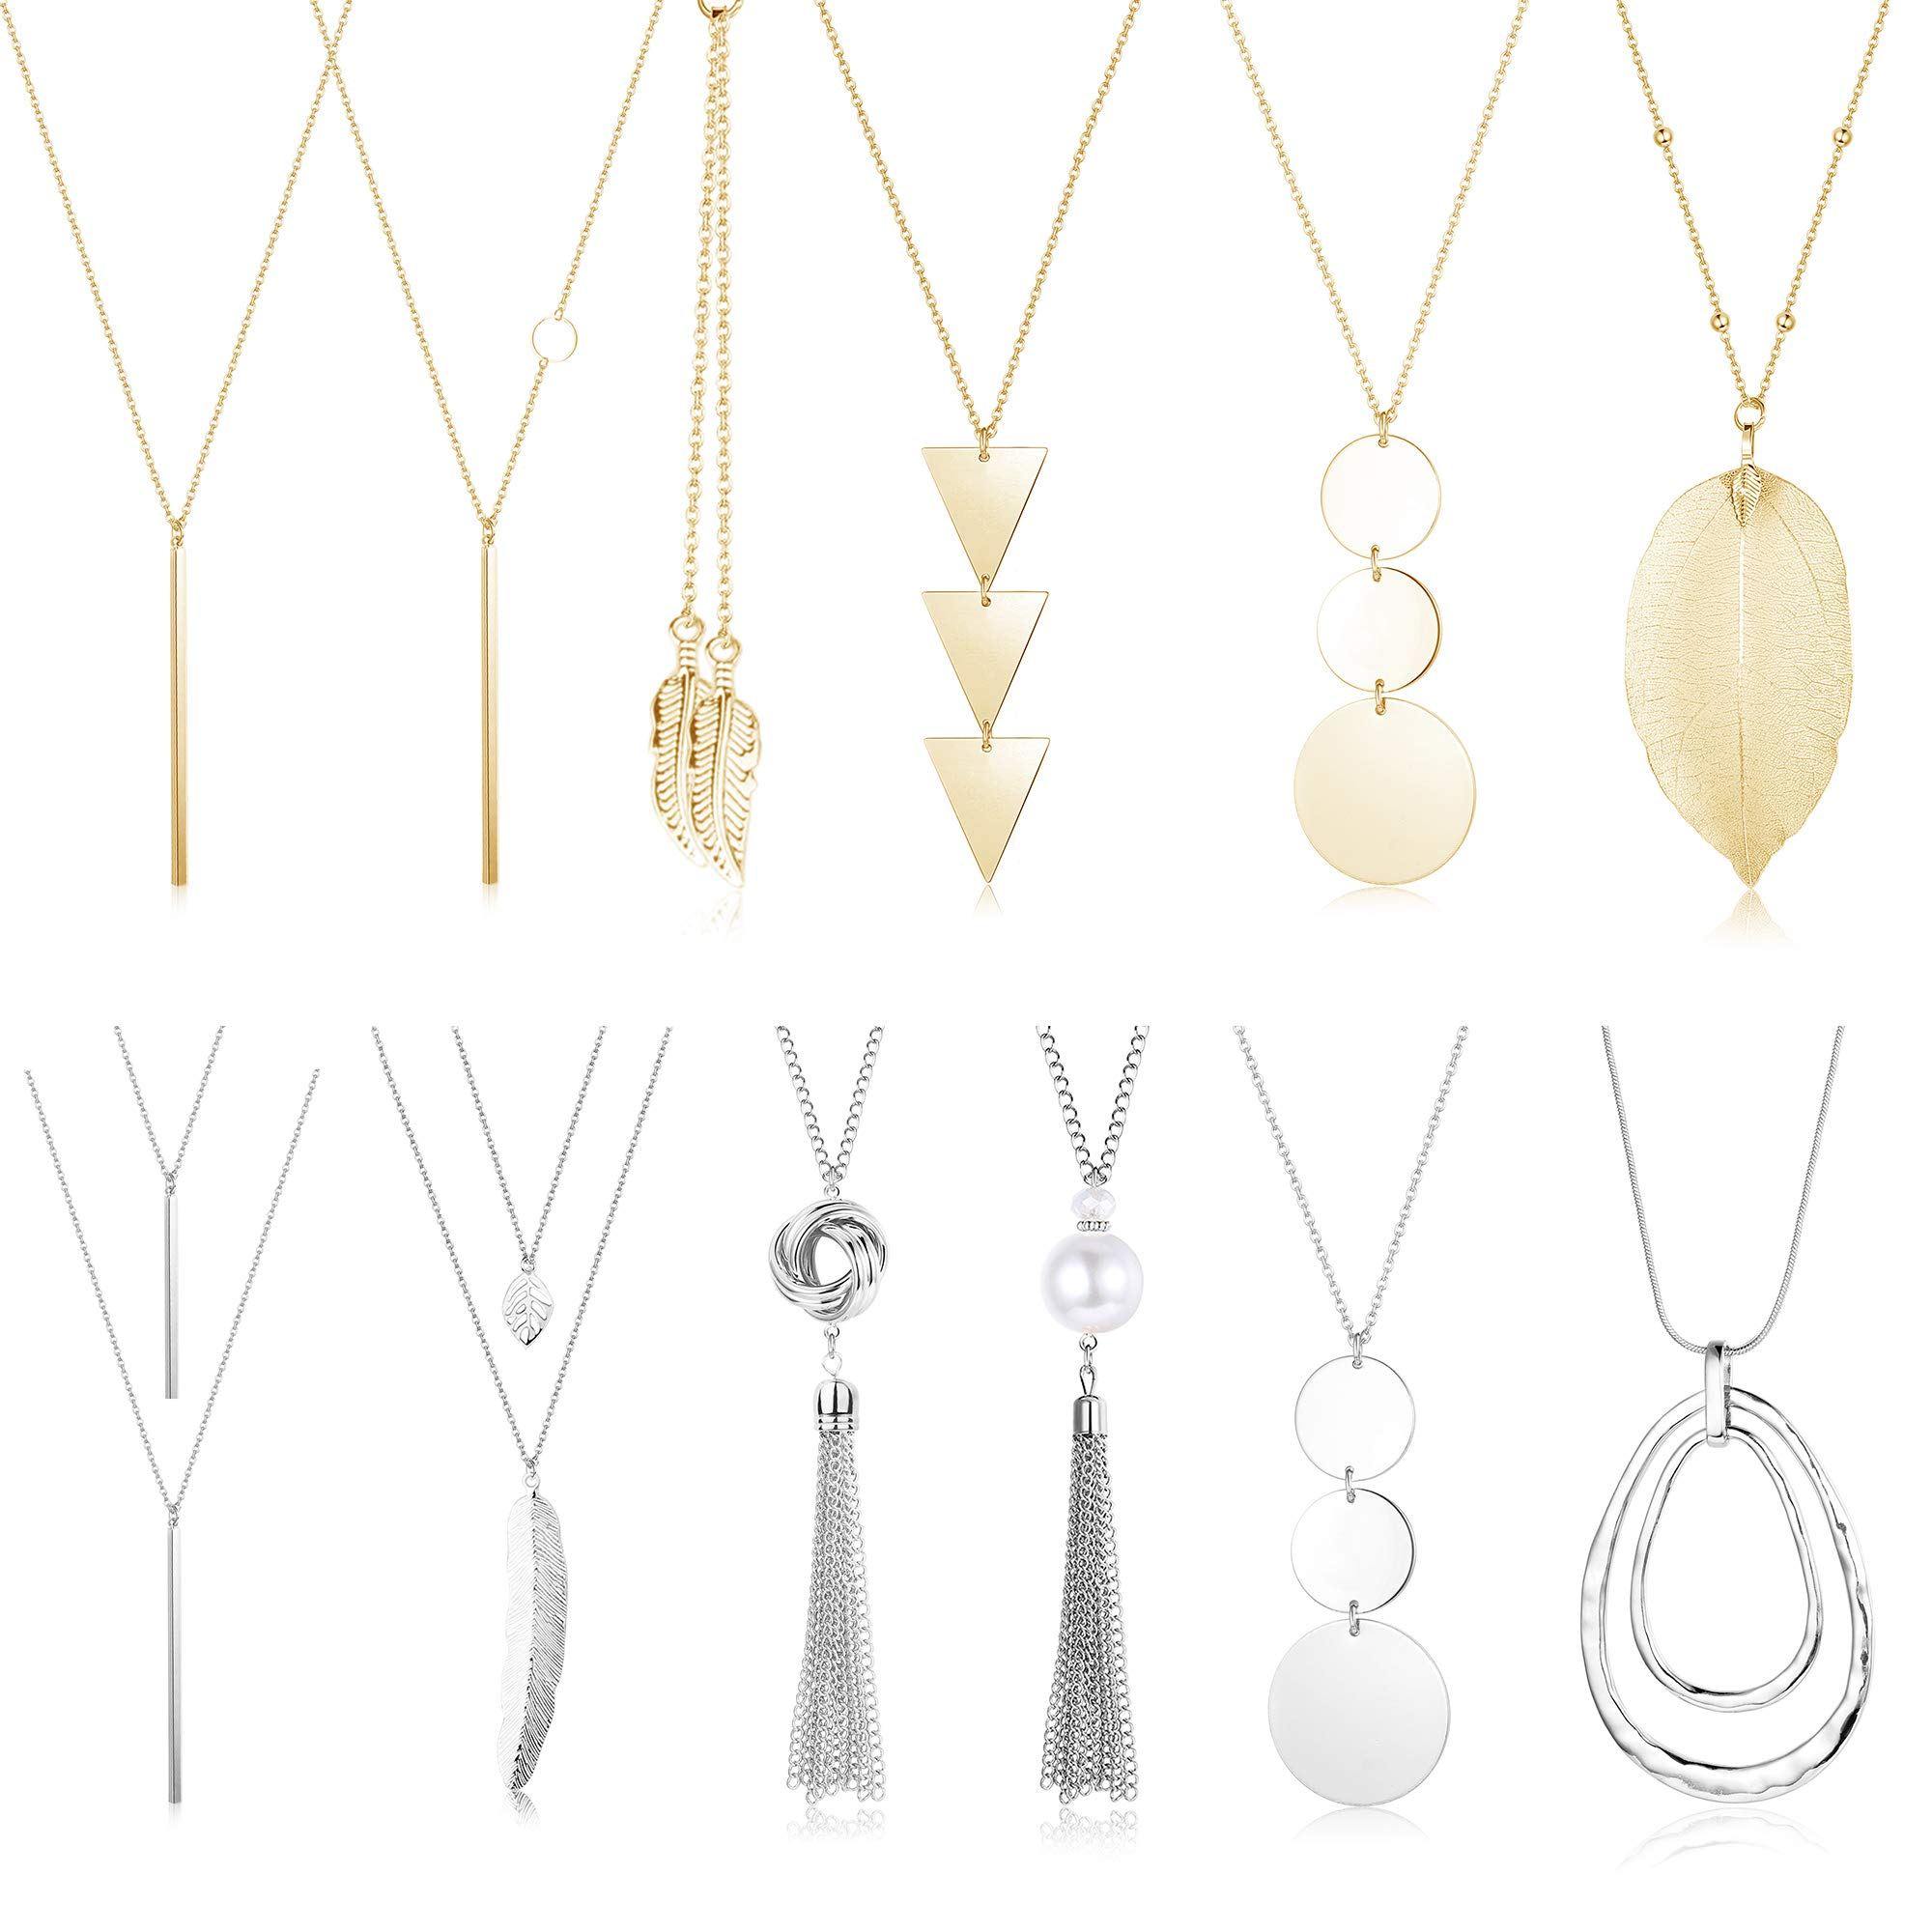 CASSIECA 12 Pcs Long Pendant Necklace for Women Leaf Bar Y-Shaped Tassel Triangle Statement Necklace Long Chain Simple Layer Sweater Necklace Set